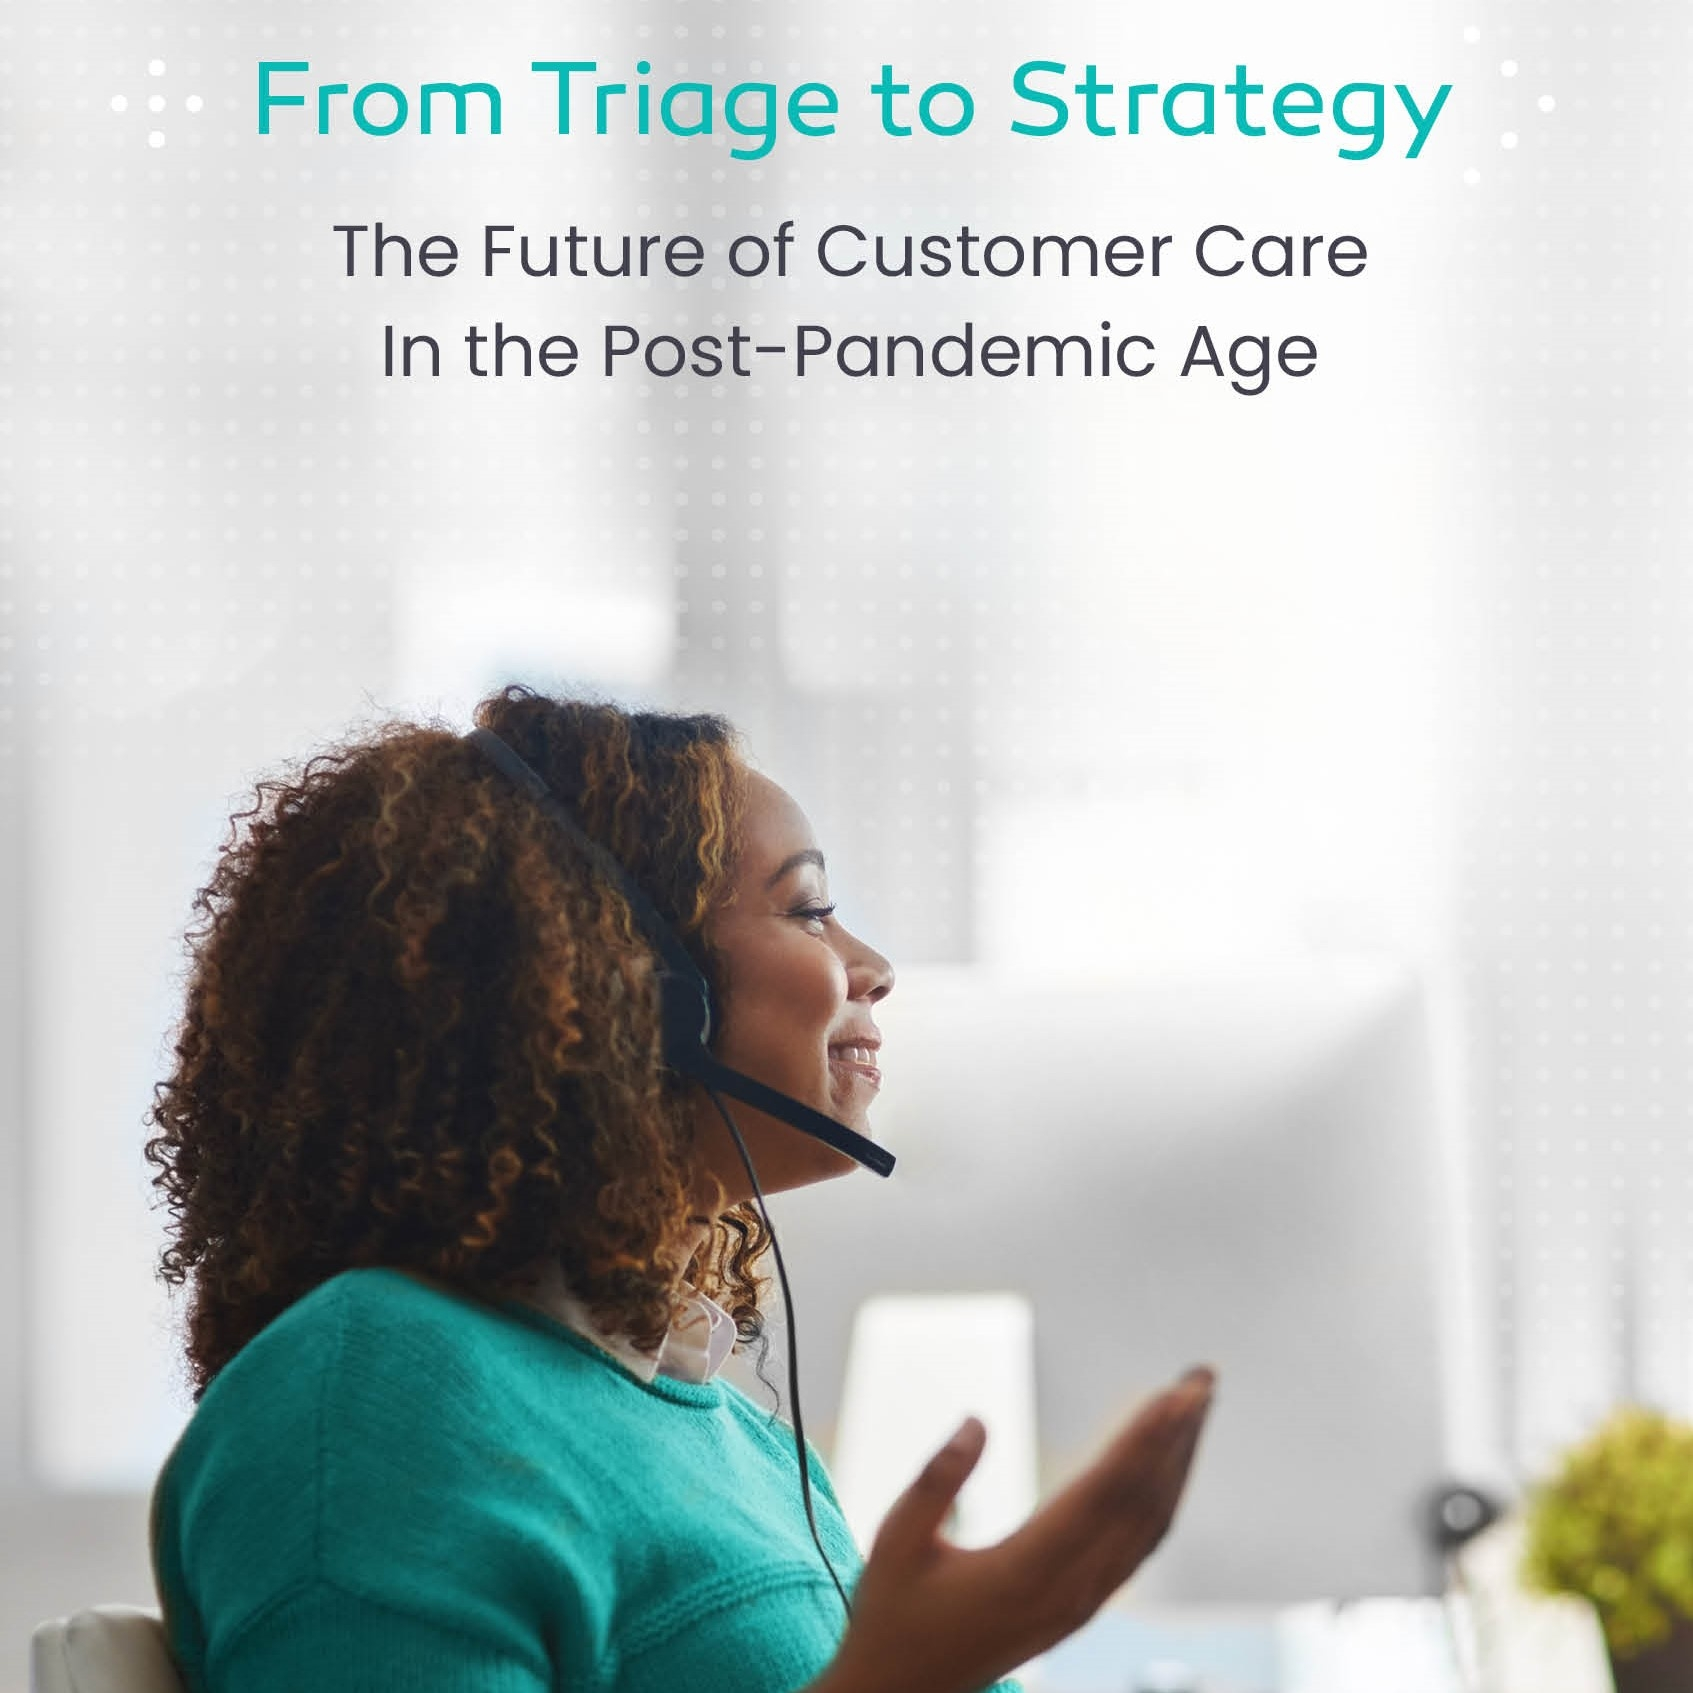 From triage to strategy: The future of customer care post pandemic whitepaper